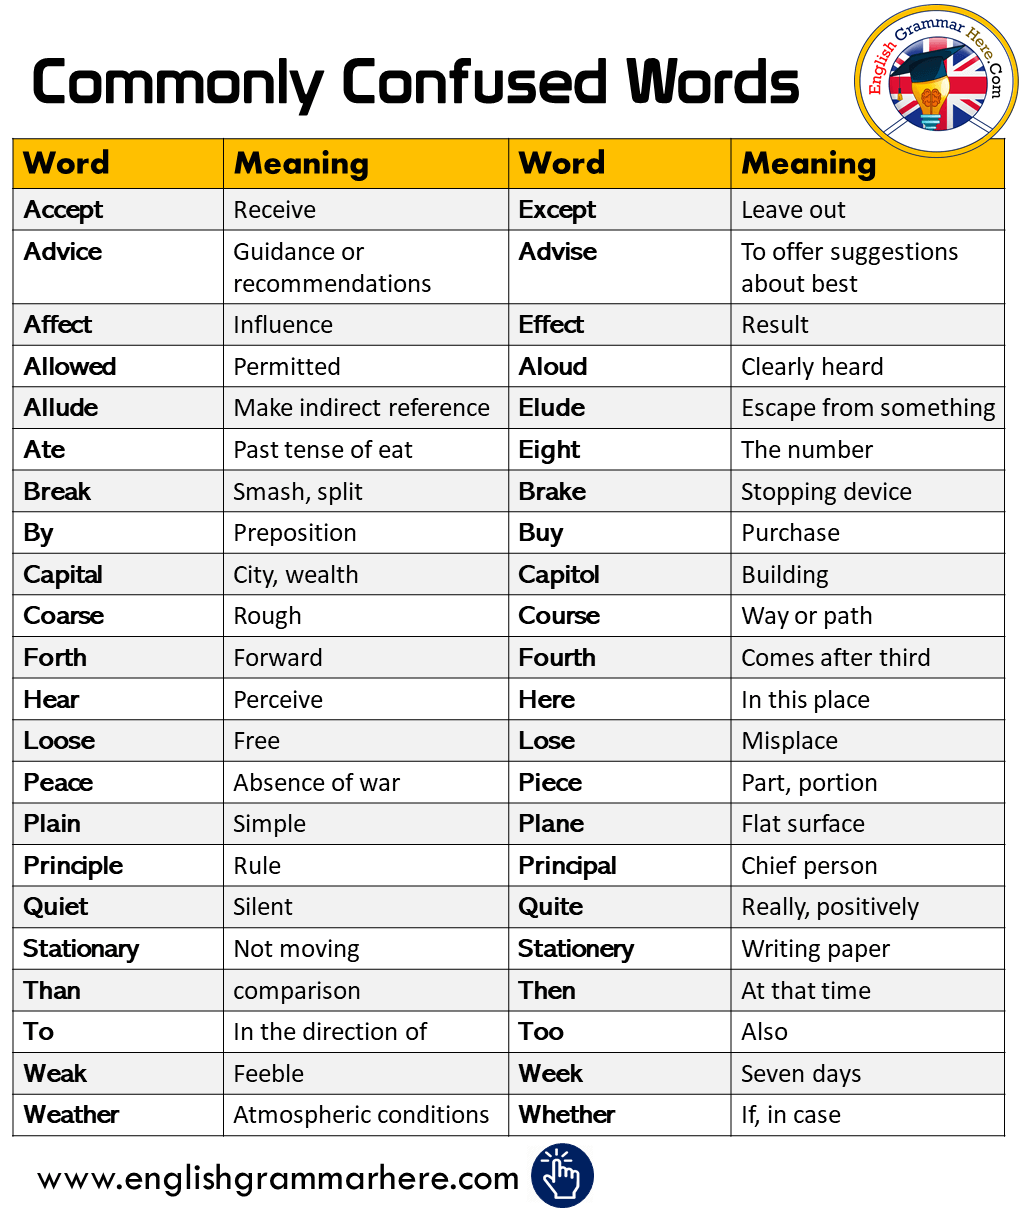 Commonly Confused Words and Meanings